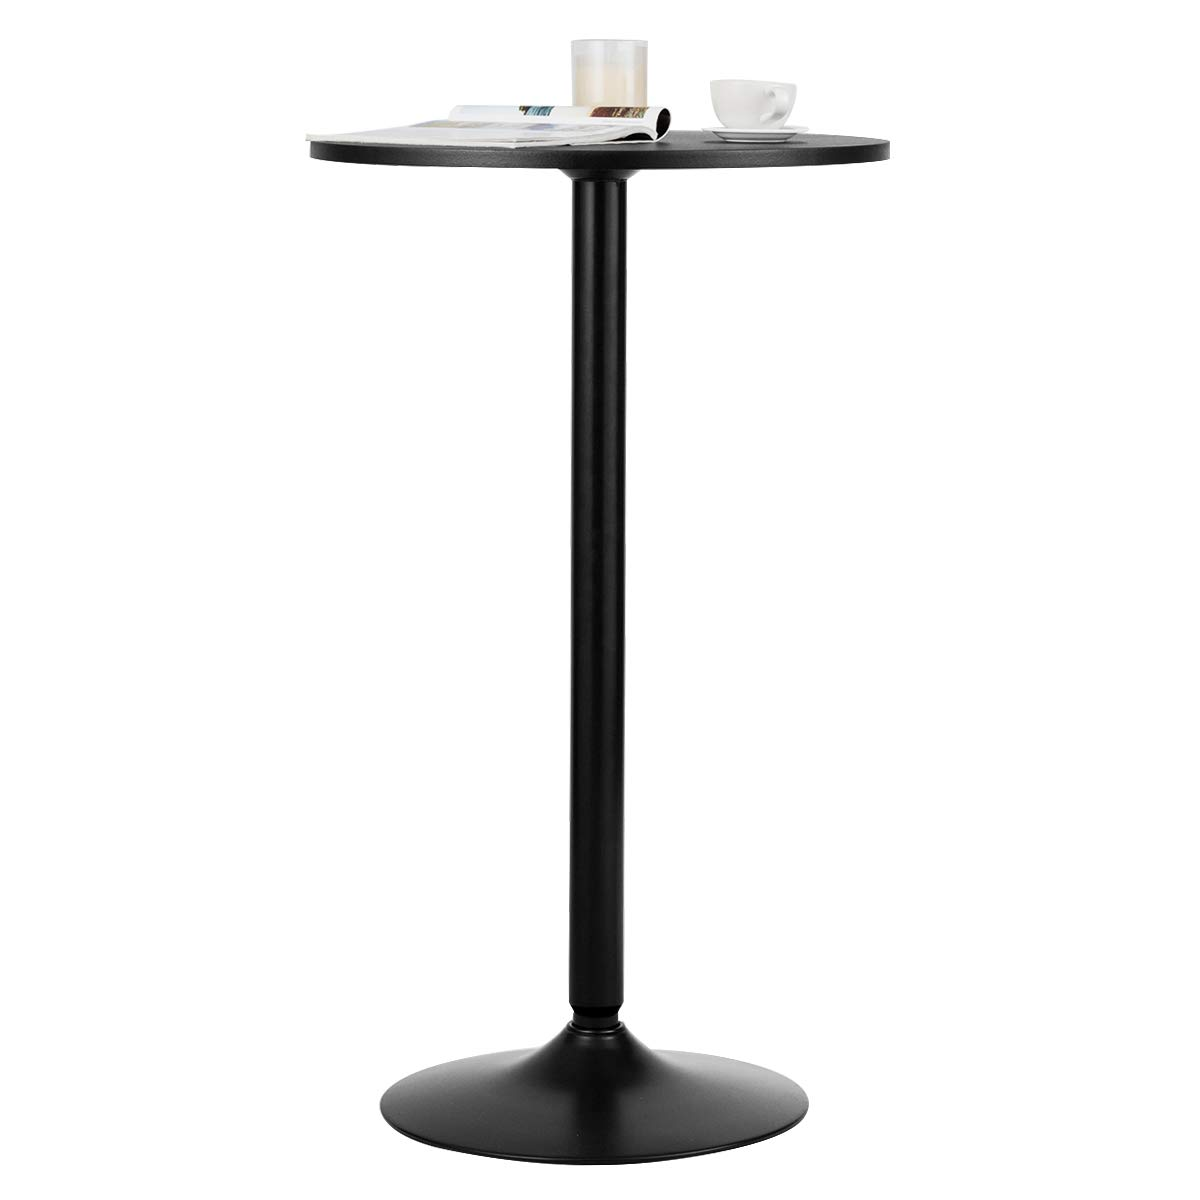 Giantex Pub and Bar Table 24-Inch 40-Inch Height Modern Style Round Top Standing Circular Cocktail Table Suitable for Living Room, Kitchen, Outdoor& Indoor Bistro Table (2) by Giantex